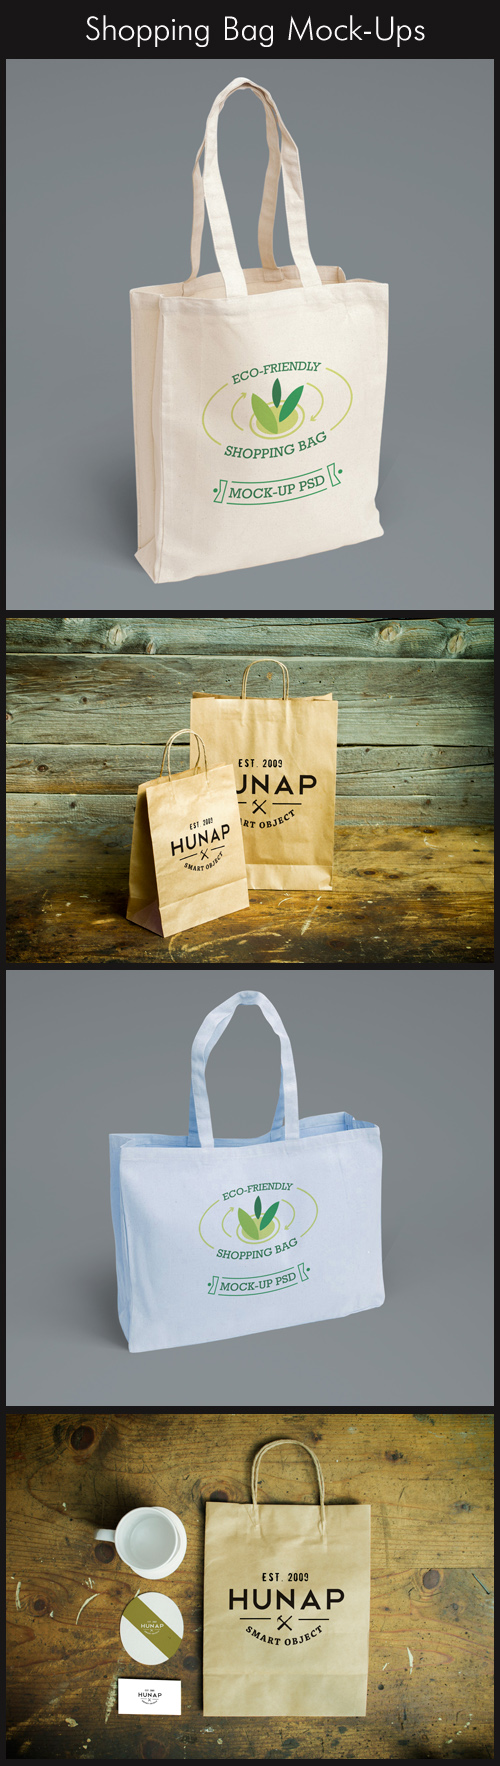 4 Shopping Bag Mock-Ups